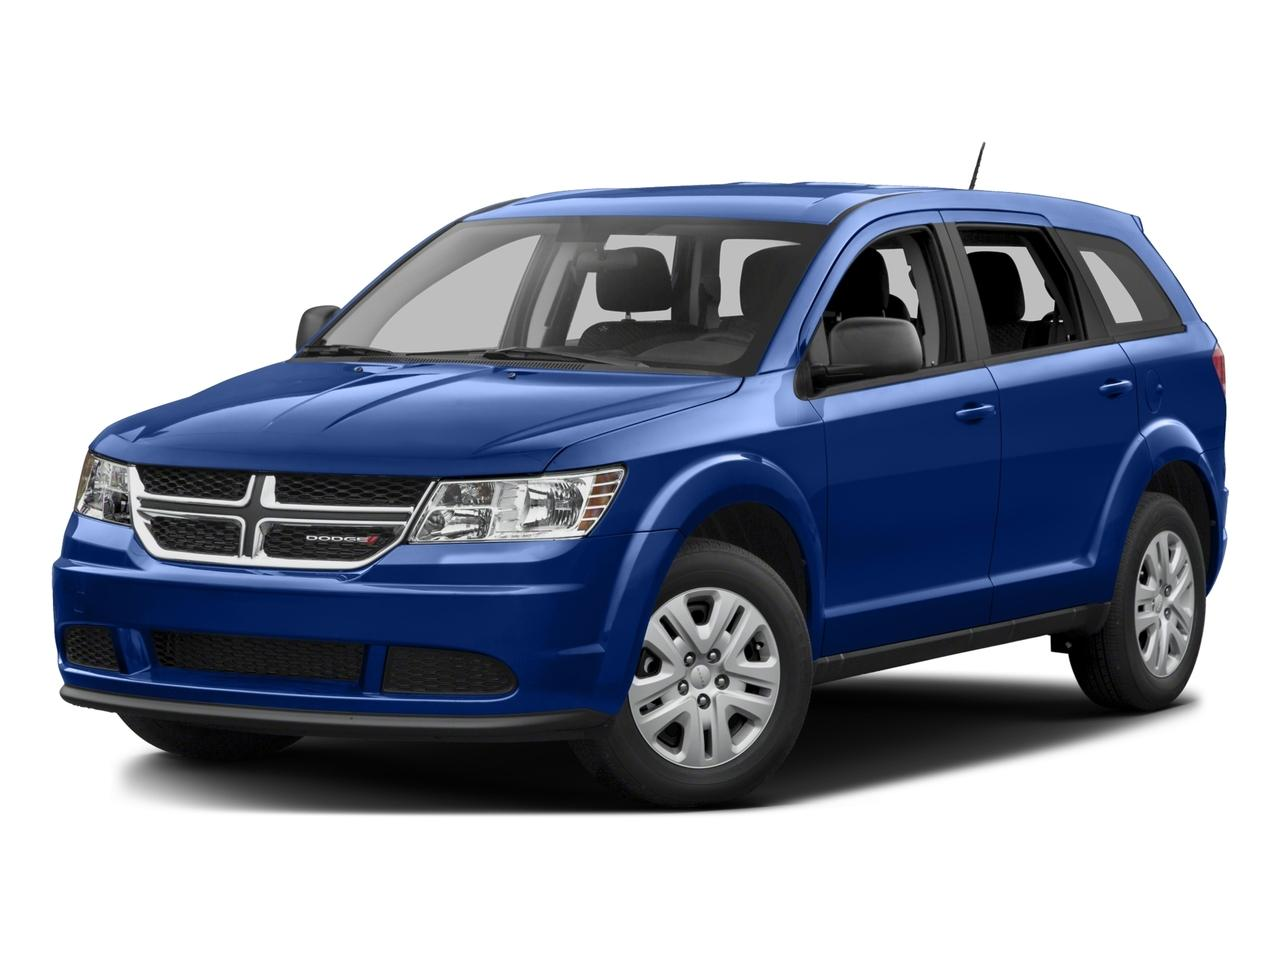 2015 Dodge Journey Vehicle Photo in Mission, TX 78572